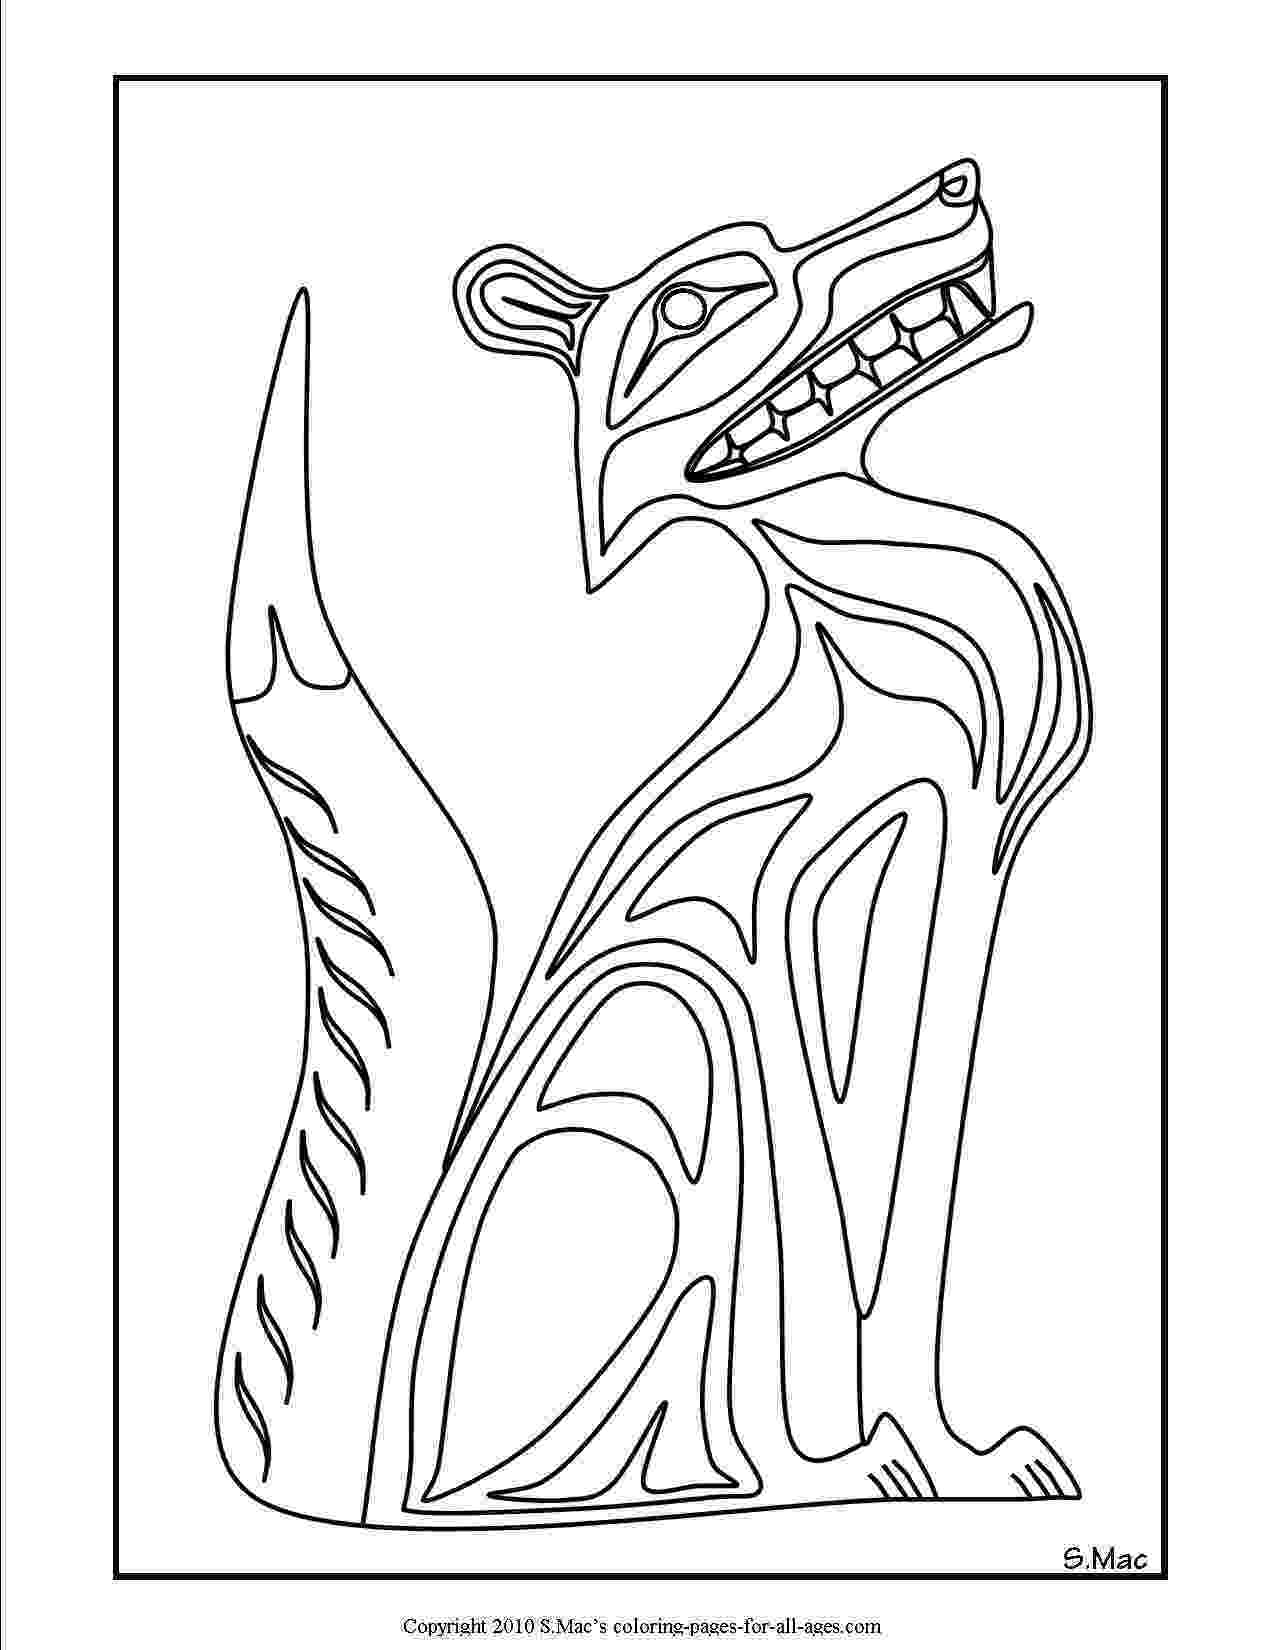 native american indian coloring pages native american coloring pages to download and print for free coloring pages indian native american